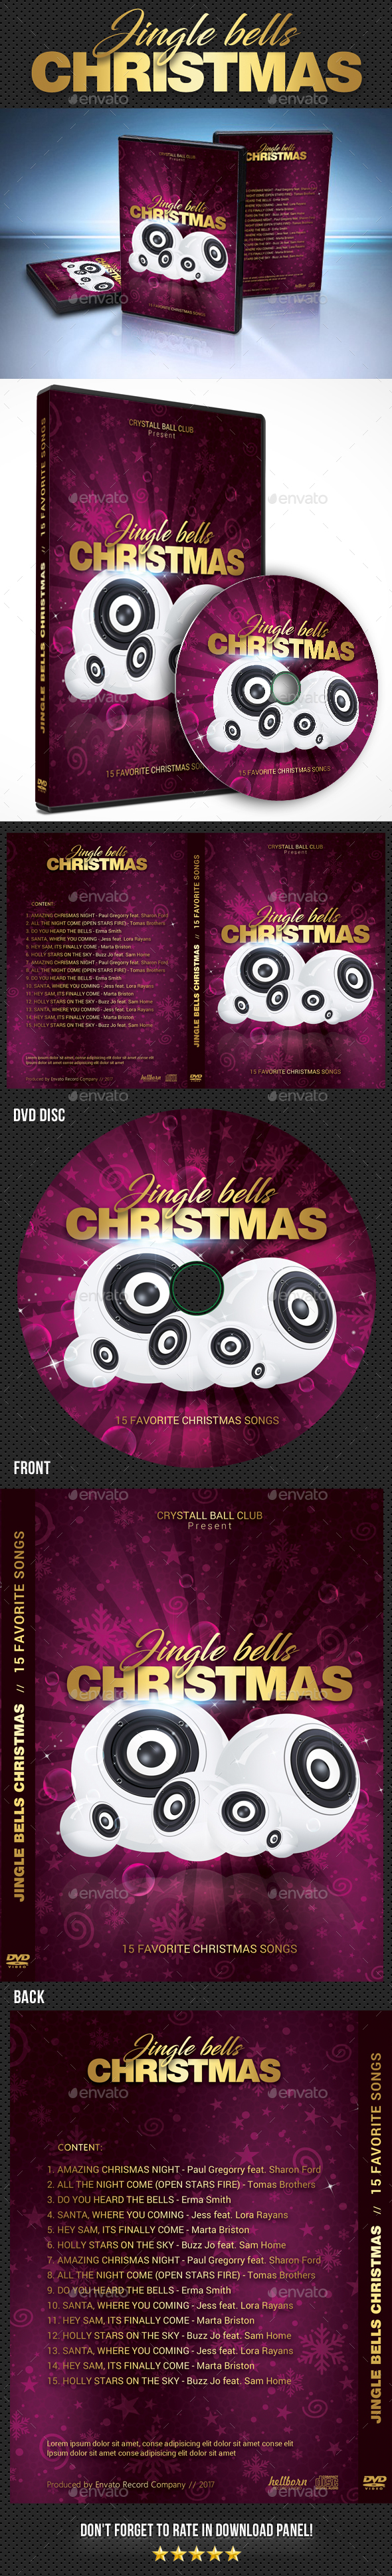 GraphicRiver Christmas Bells DVD Cover Template 20997346